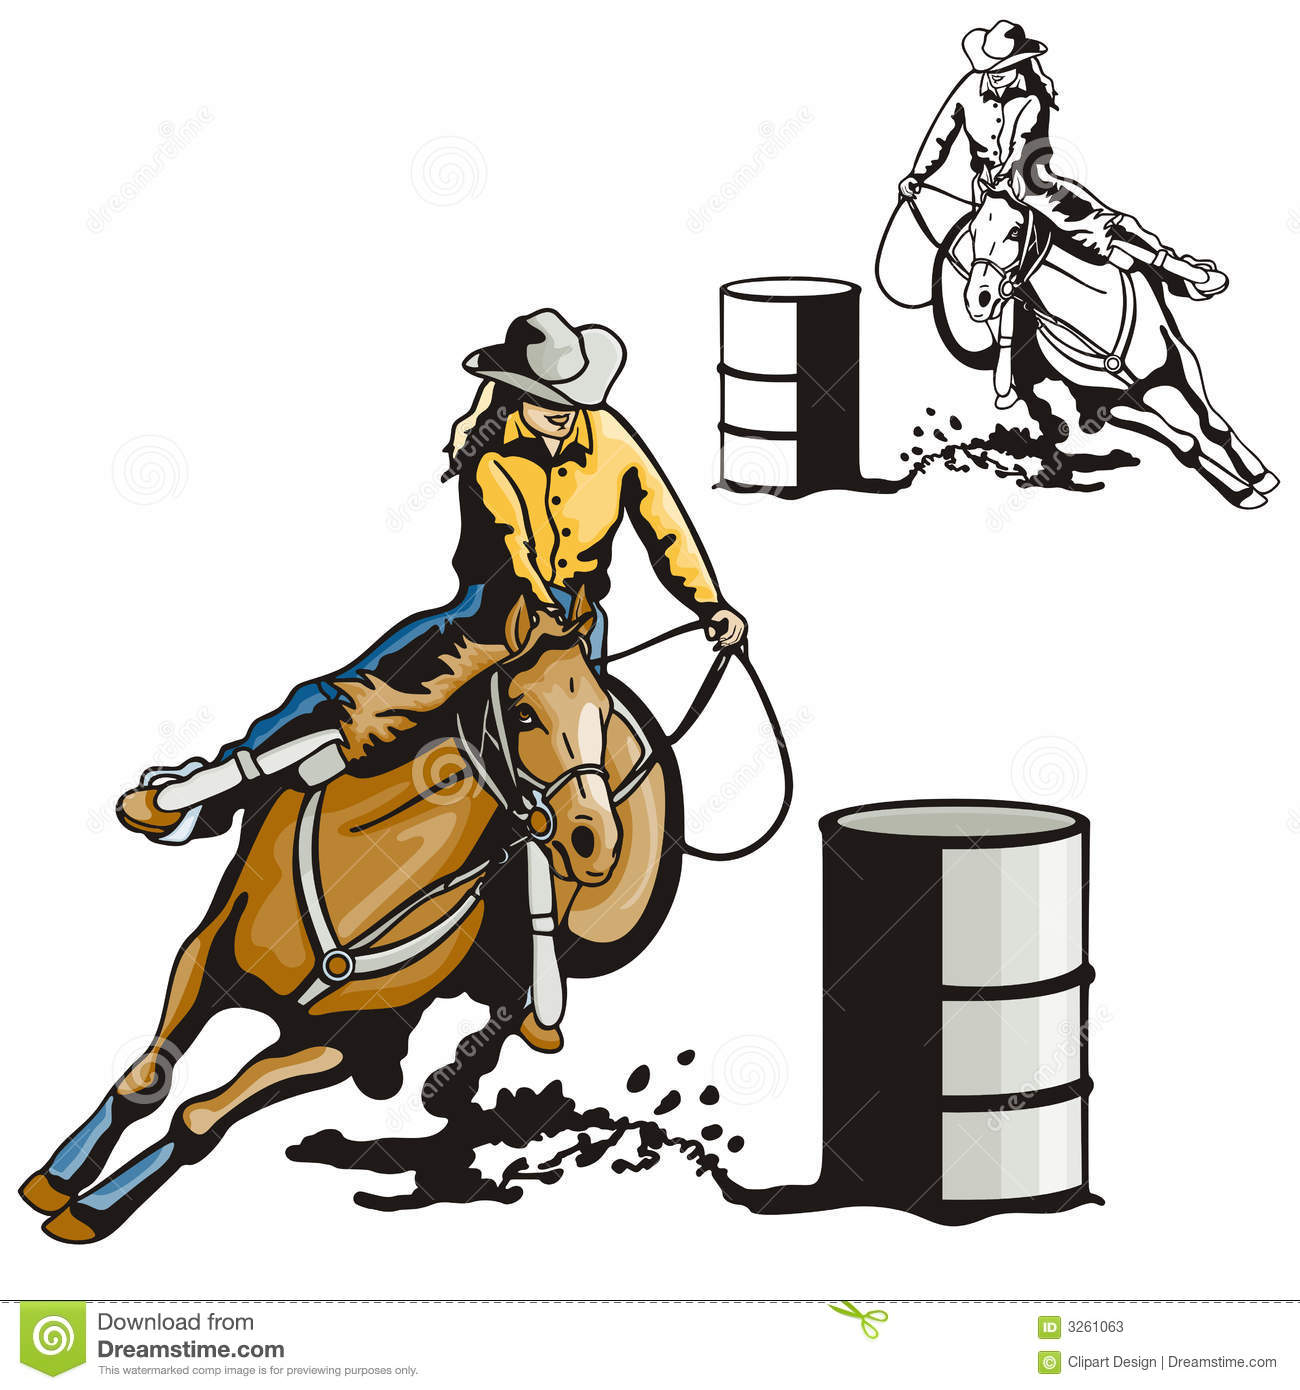 hight resolution of vector illustration of a ladies barrel racing sport eps file available